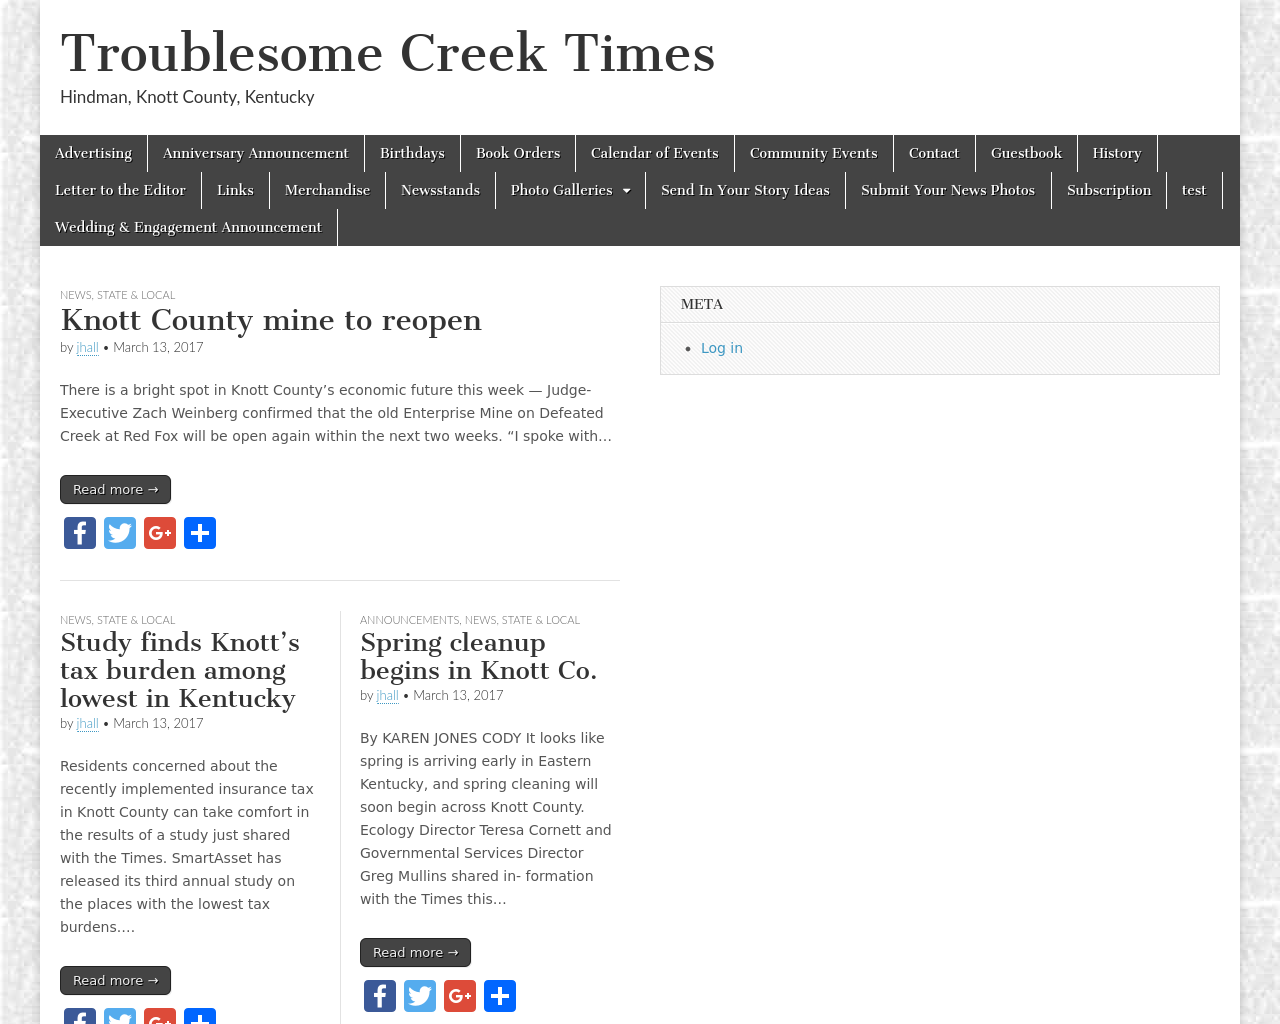 Troublesome-Creek-Times-Advertising-Reviews-Pricing